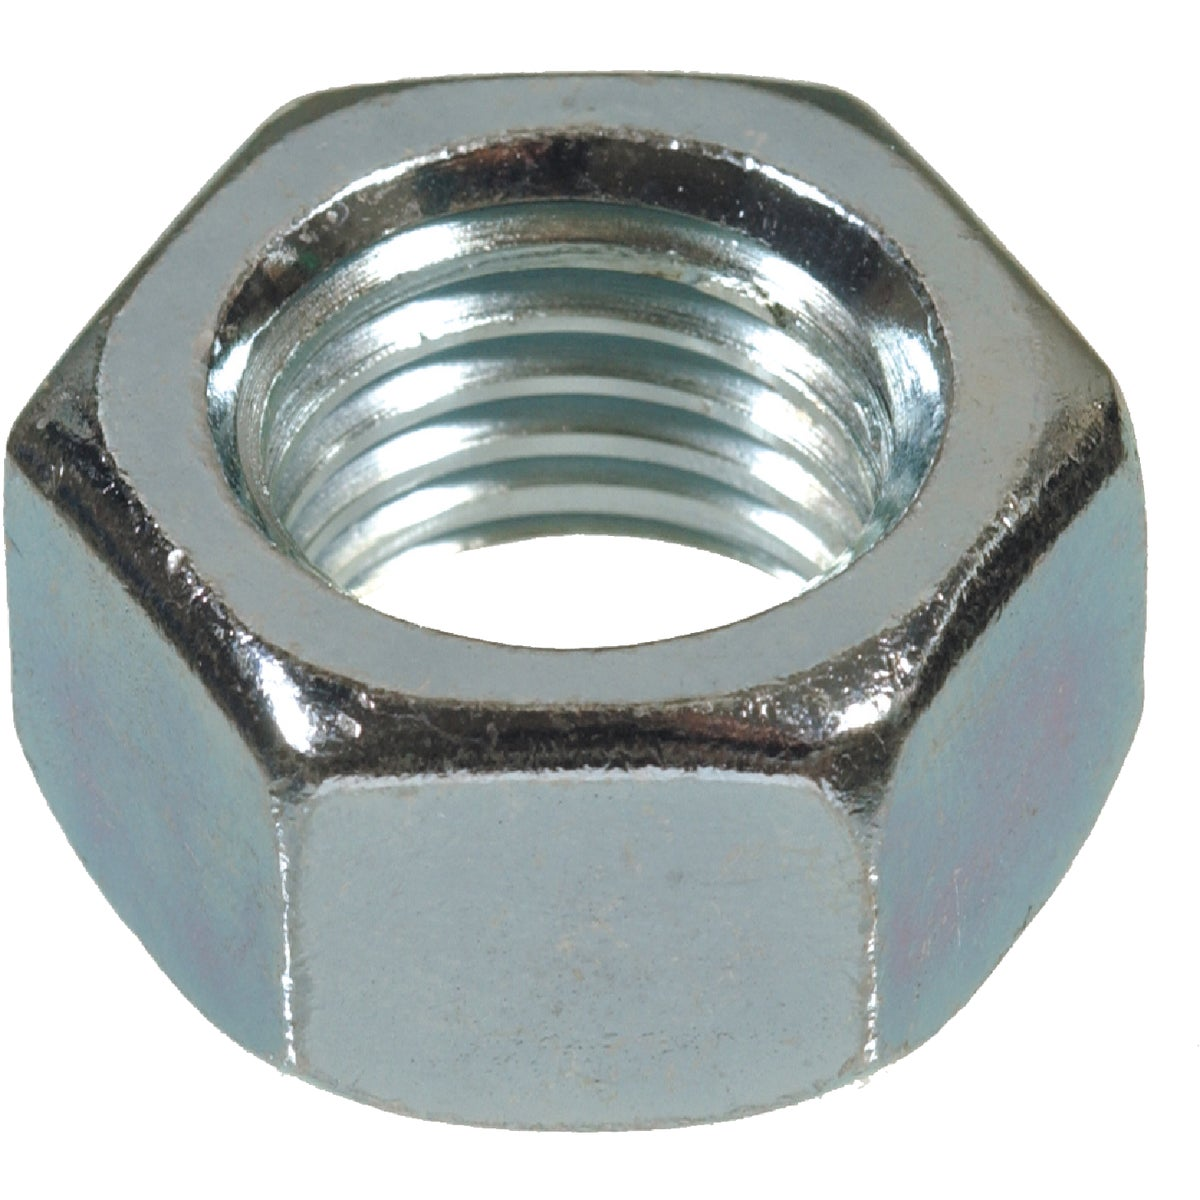 100PC 5/16-18CRS HEX NUT